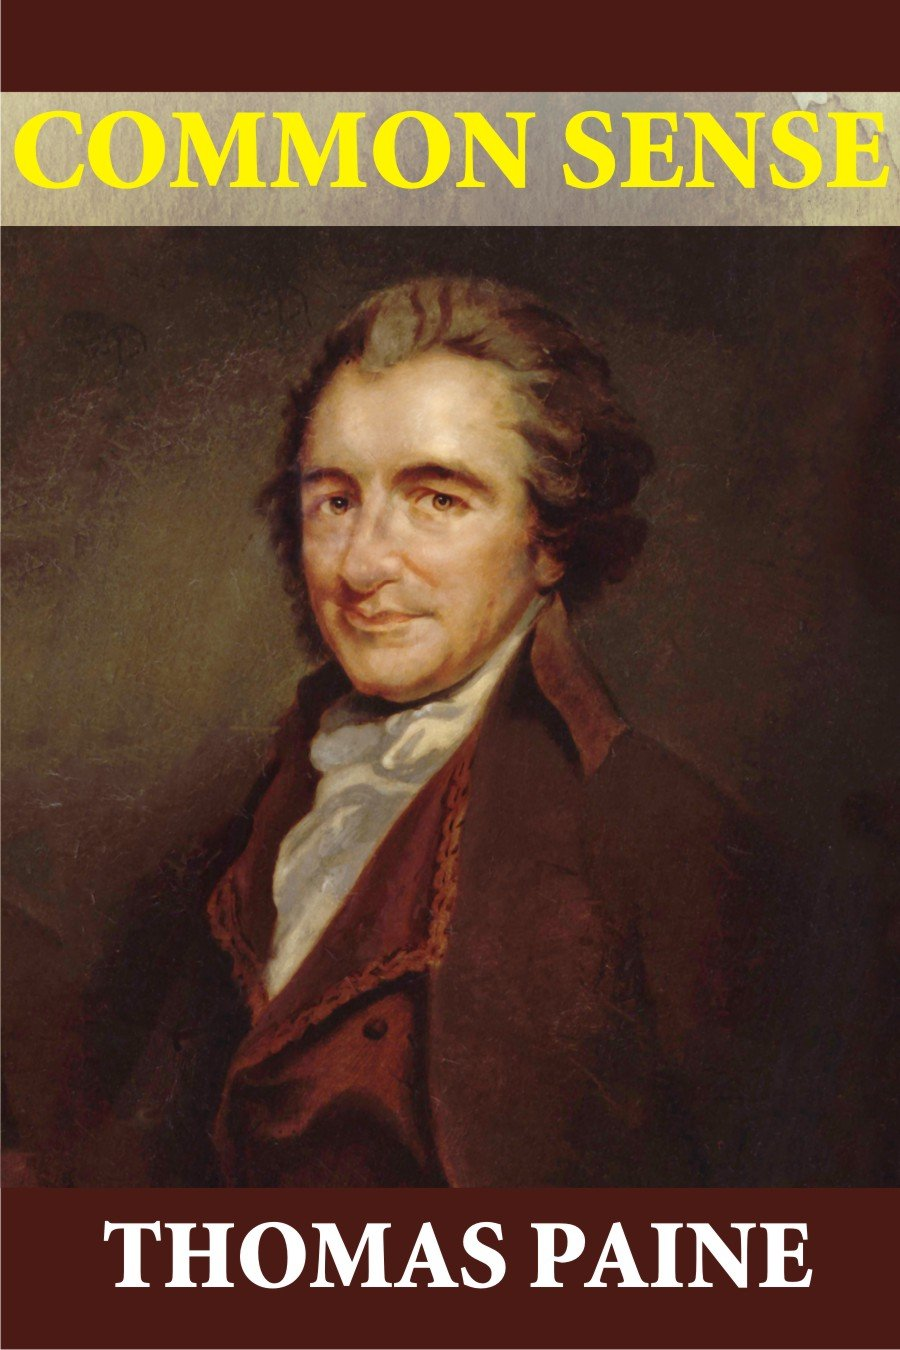 Thomas Paine, Passionate Pamphleteer for Liberty